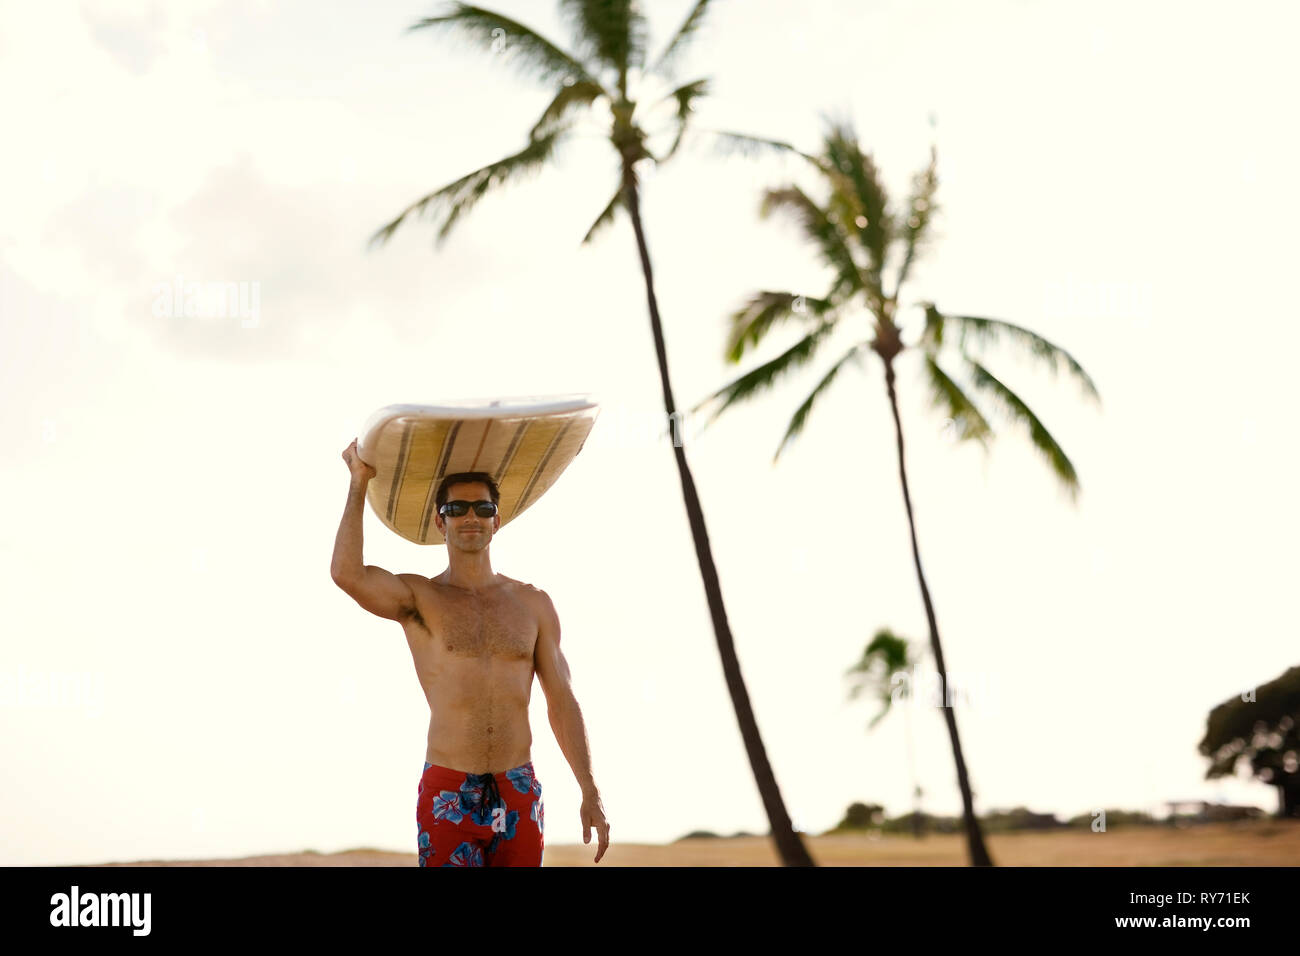 Mid adult man carrying a surfboard on top of his head. Stock Photo